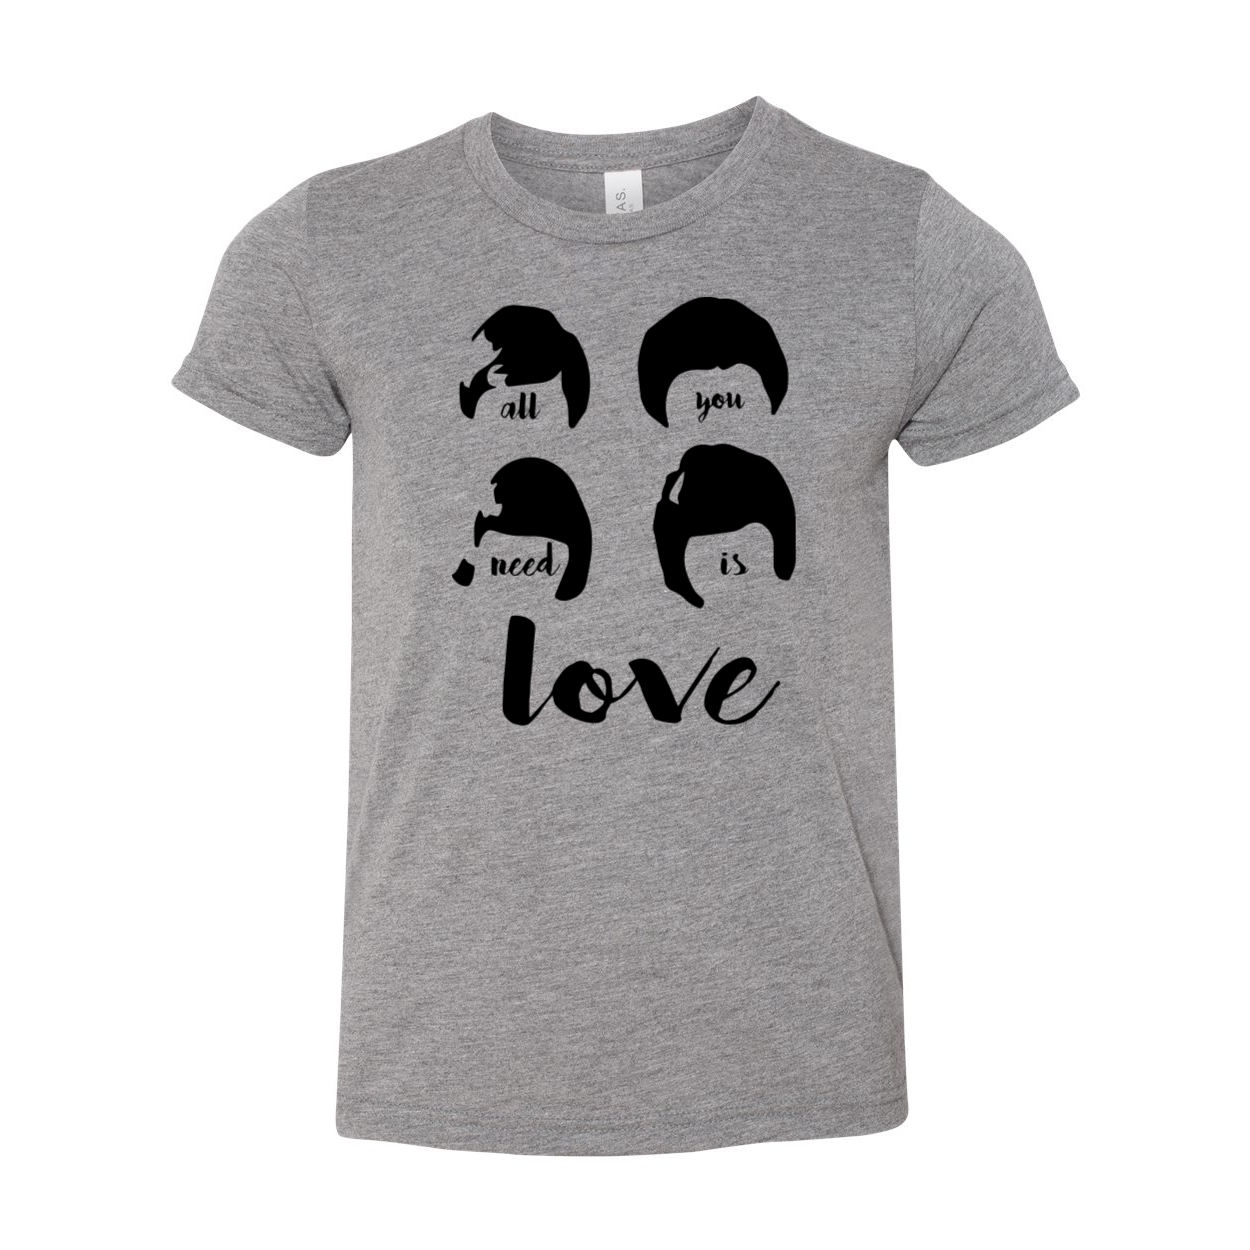 All You Need is Love Youth Tee